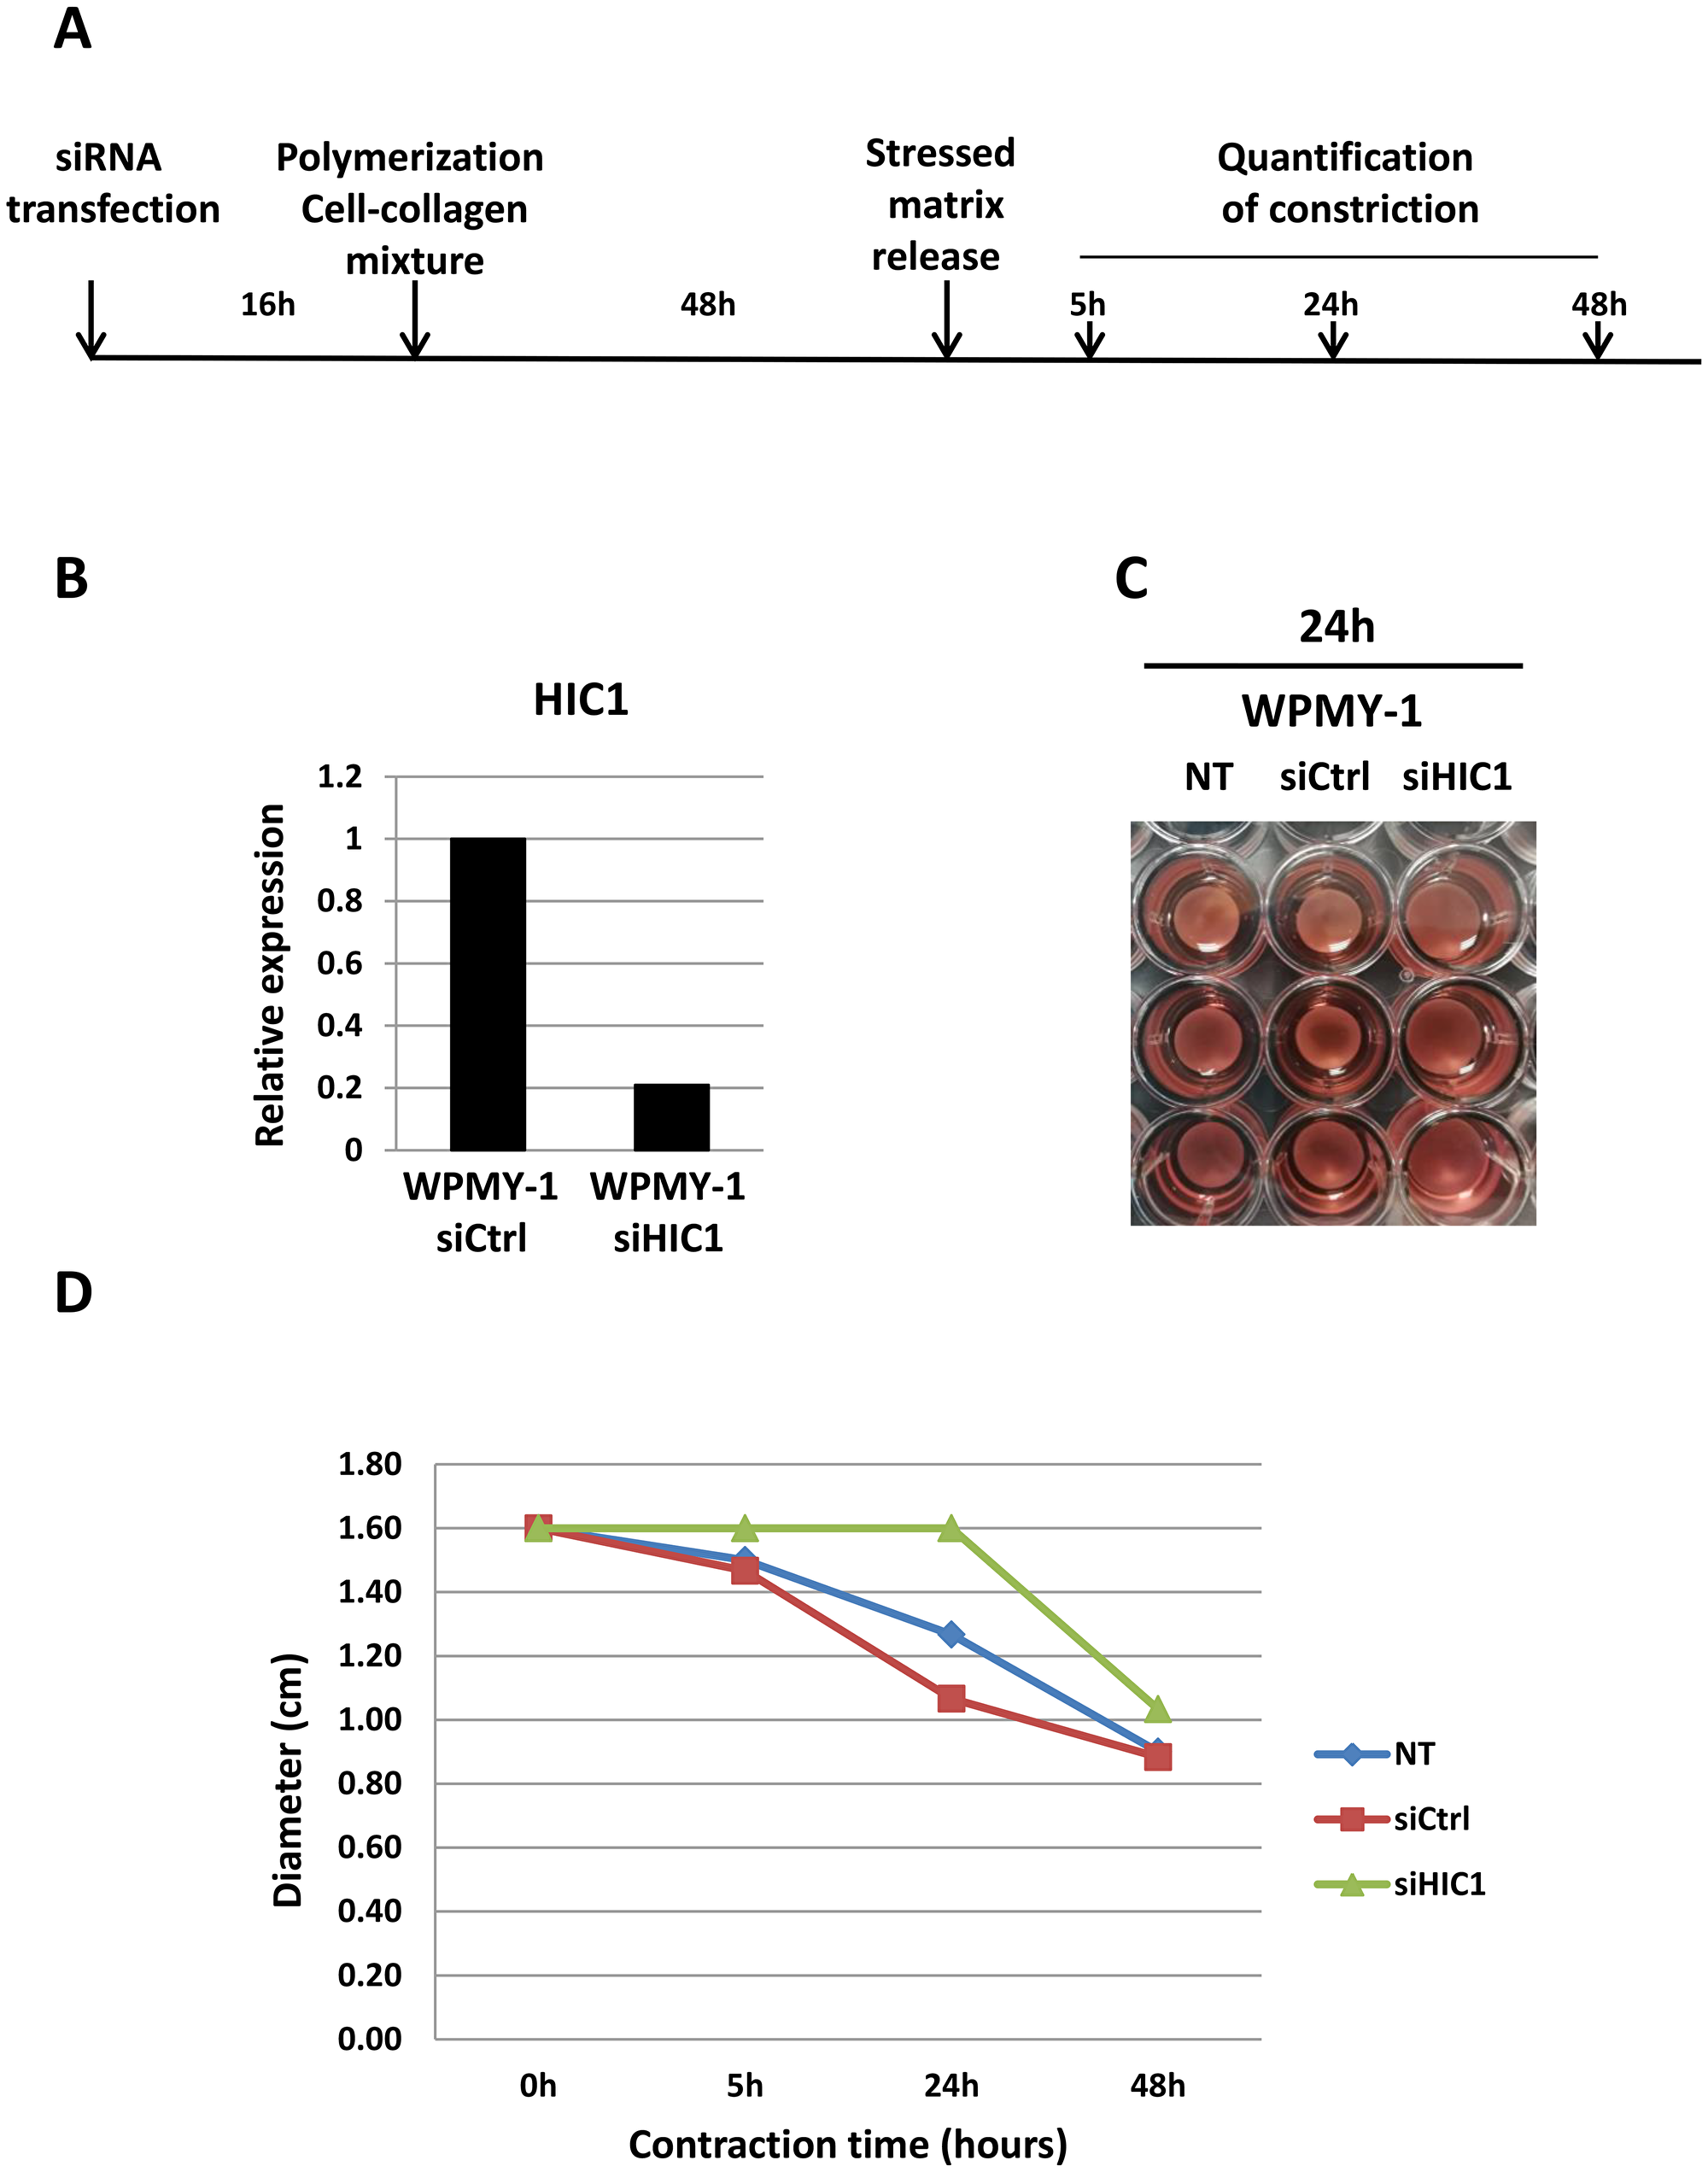 HIC1 inactivation impairs the contractility of the myofibroblastic cell line WPMY-1.